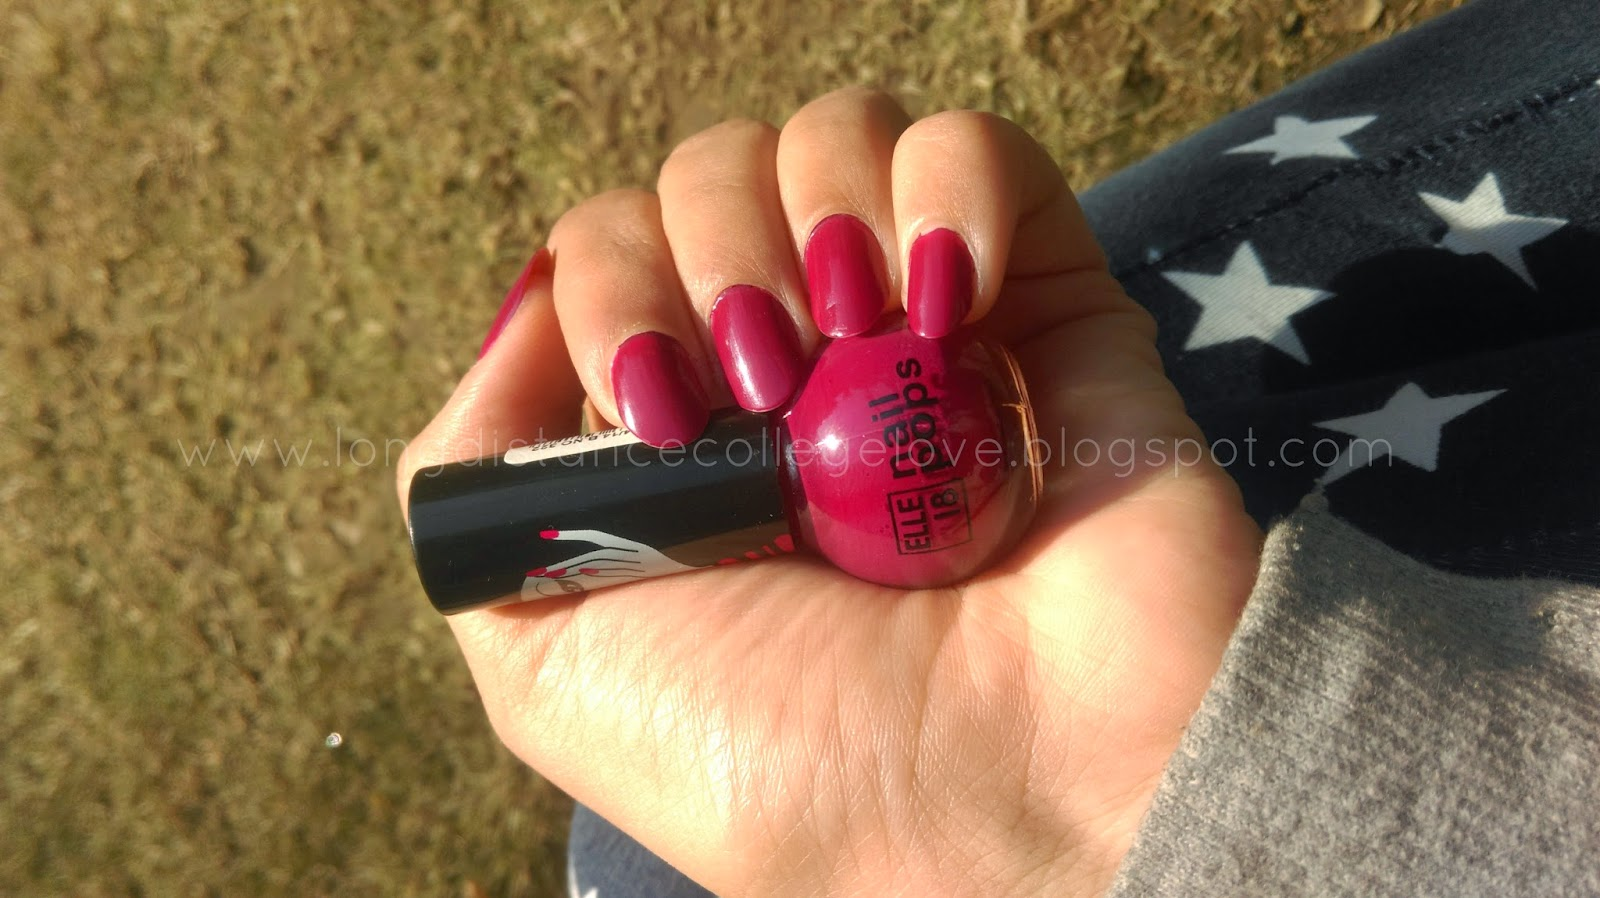 elle 18 nail pop, nailpolish, colour pop online, elle 18, elle 18 India, elle 18 nail pop india, elle 18 nail pop online, elle 18 nail pop price india,